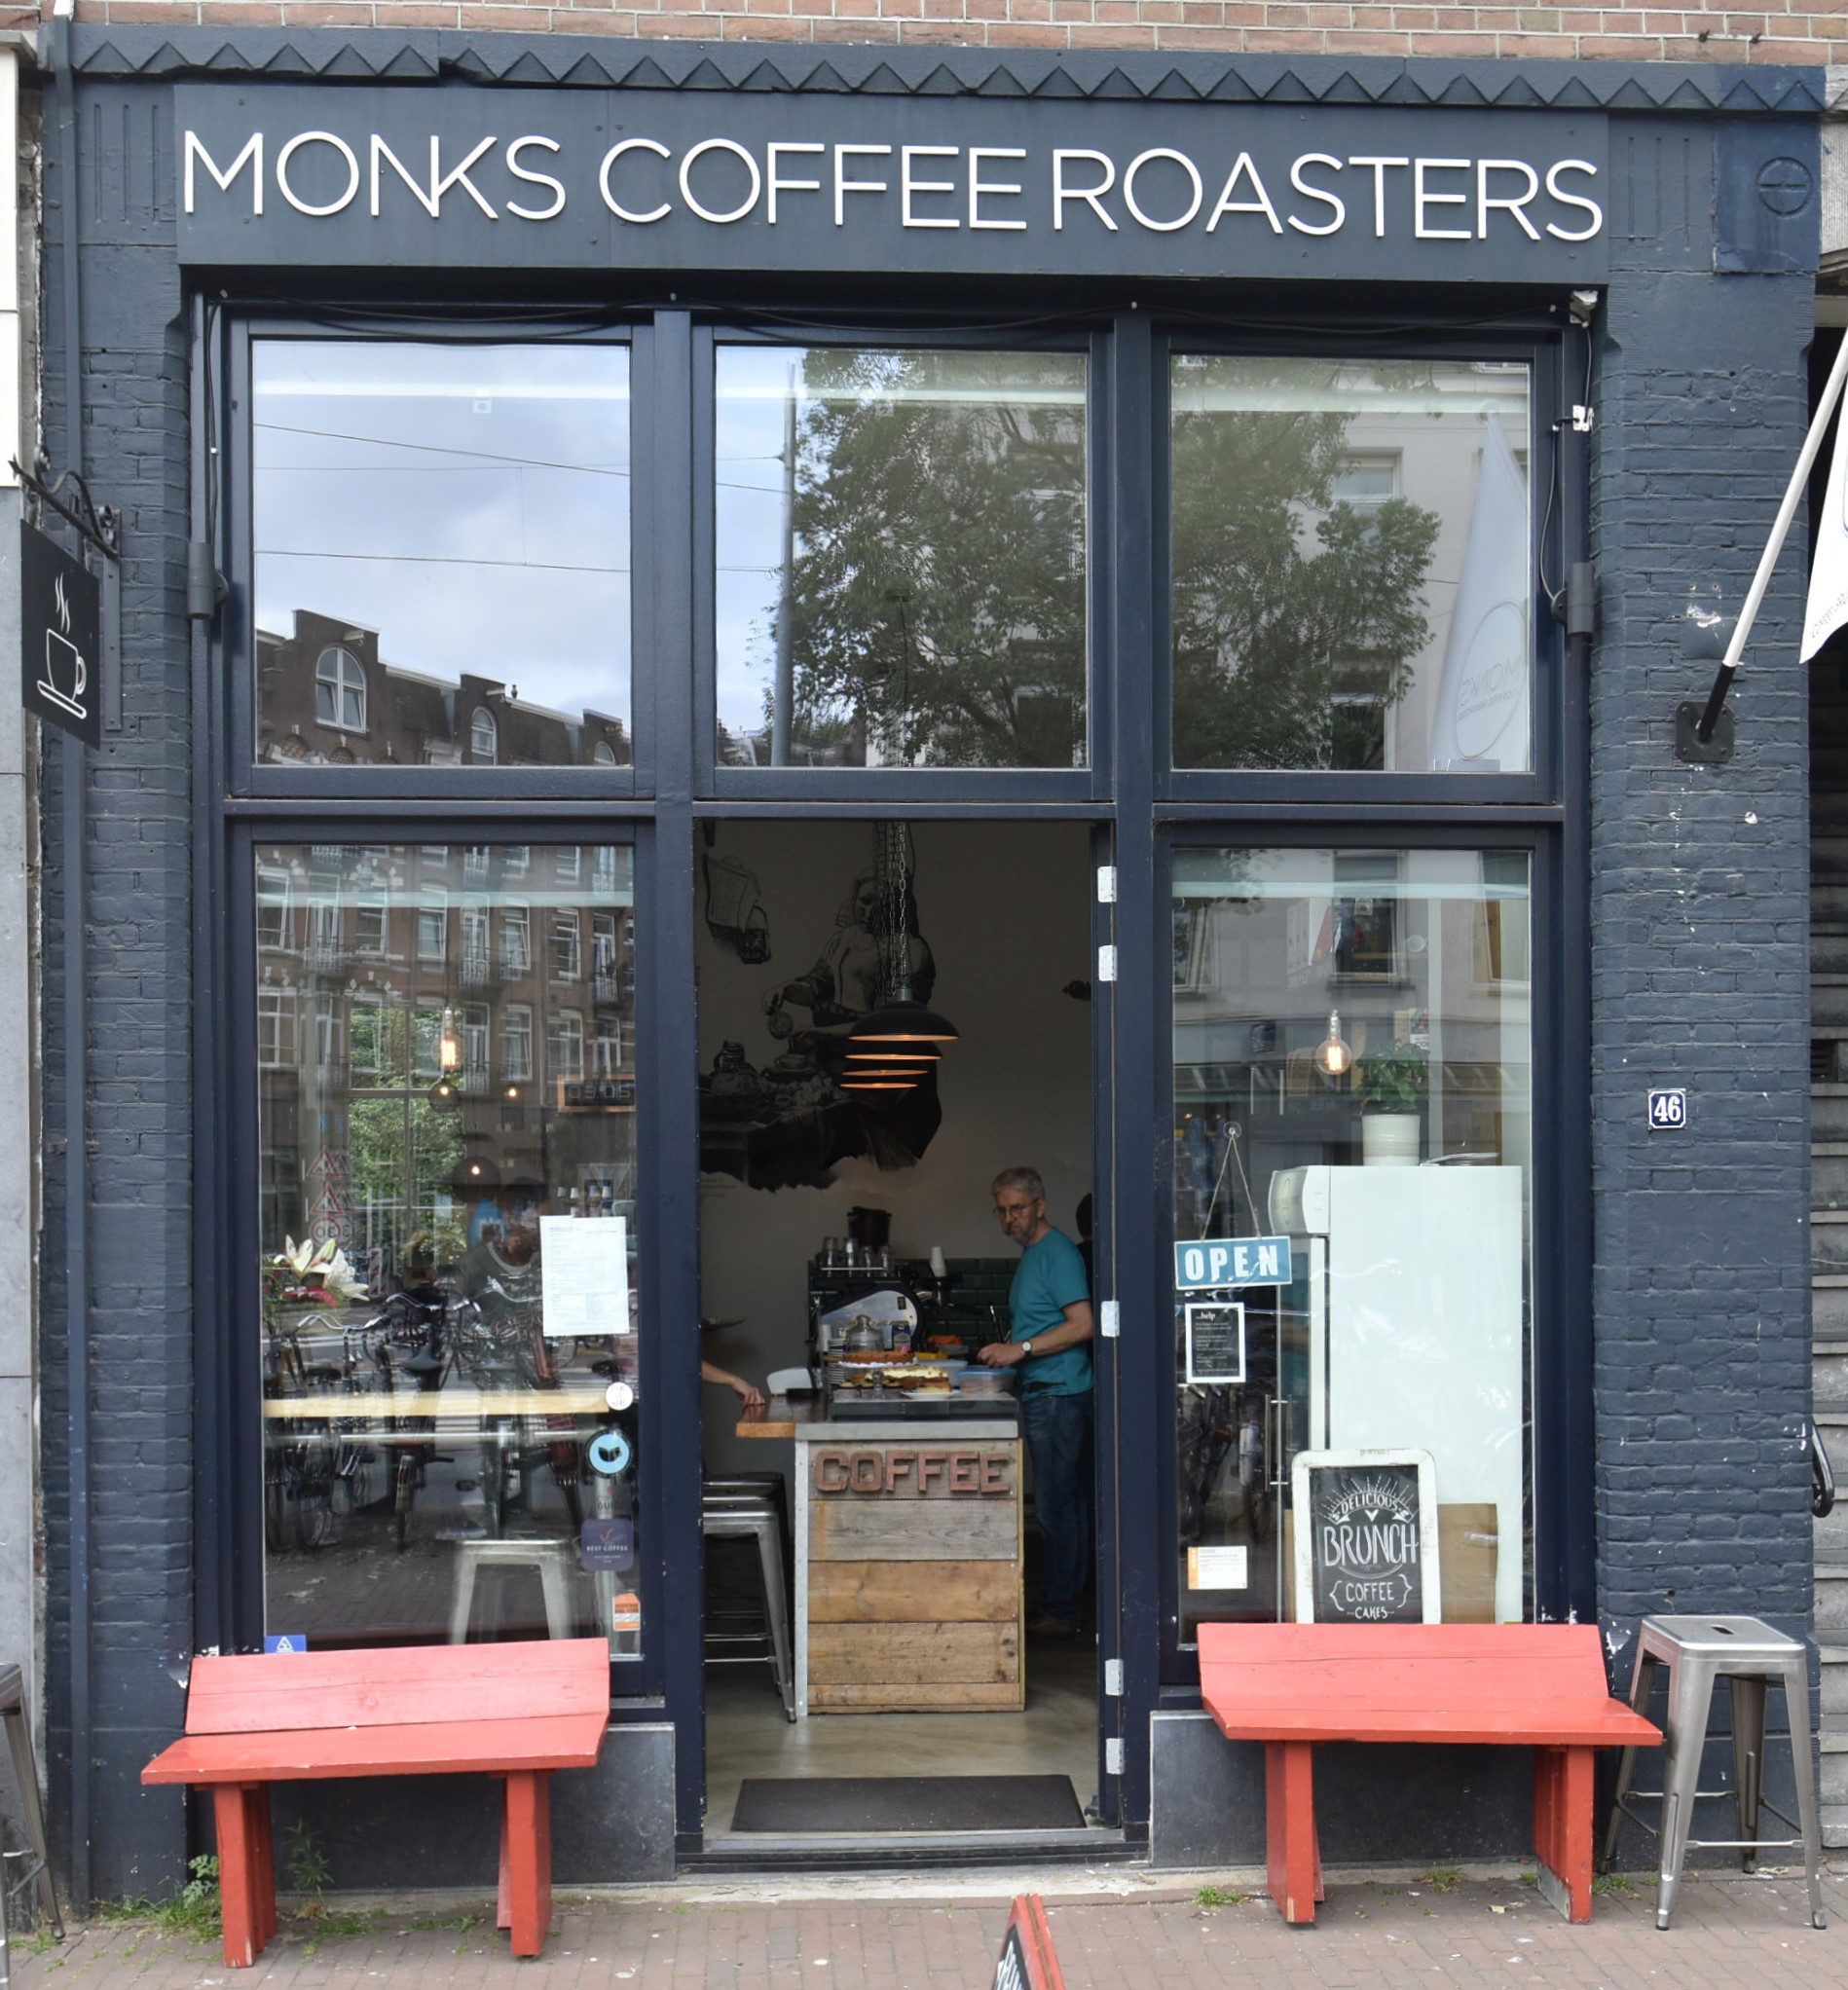 Monks Coffee Roasters on Bilderdijkstraat in Amsterdah, with benches either side of the door and the counter clearly visible.